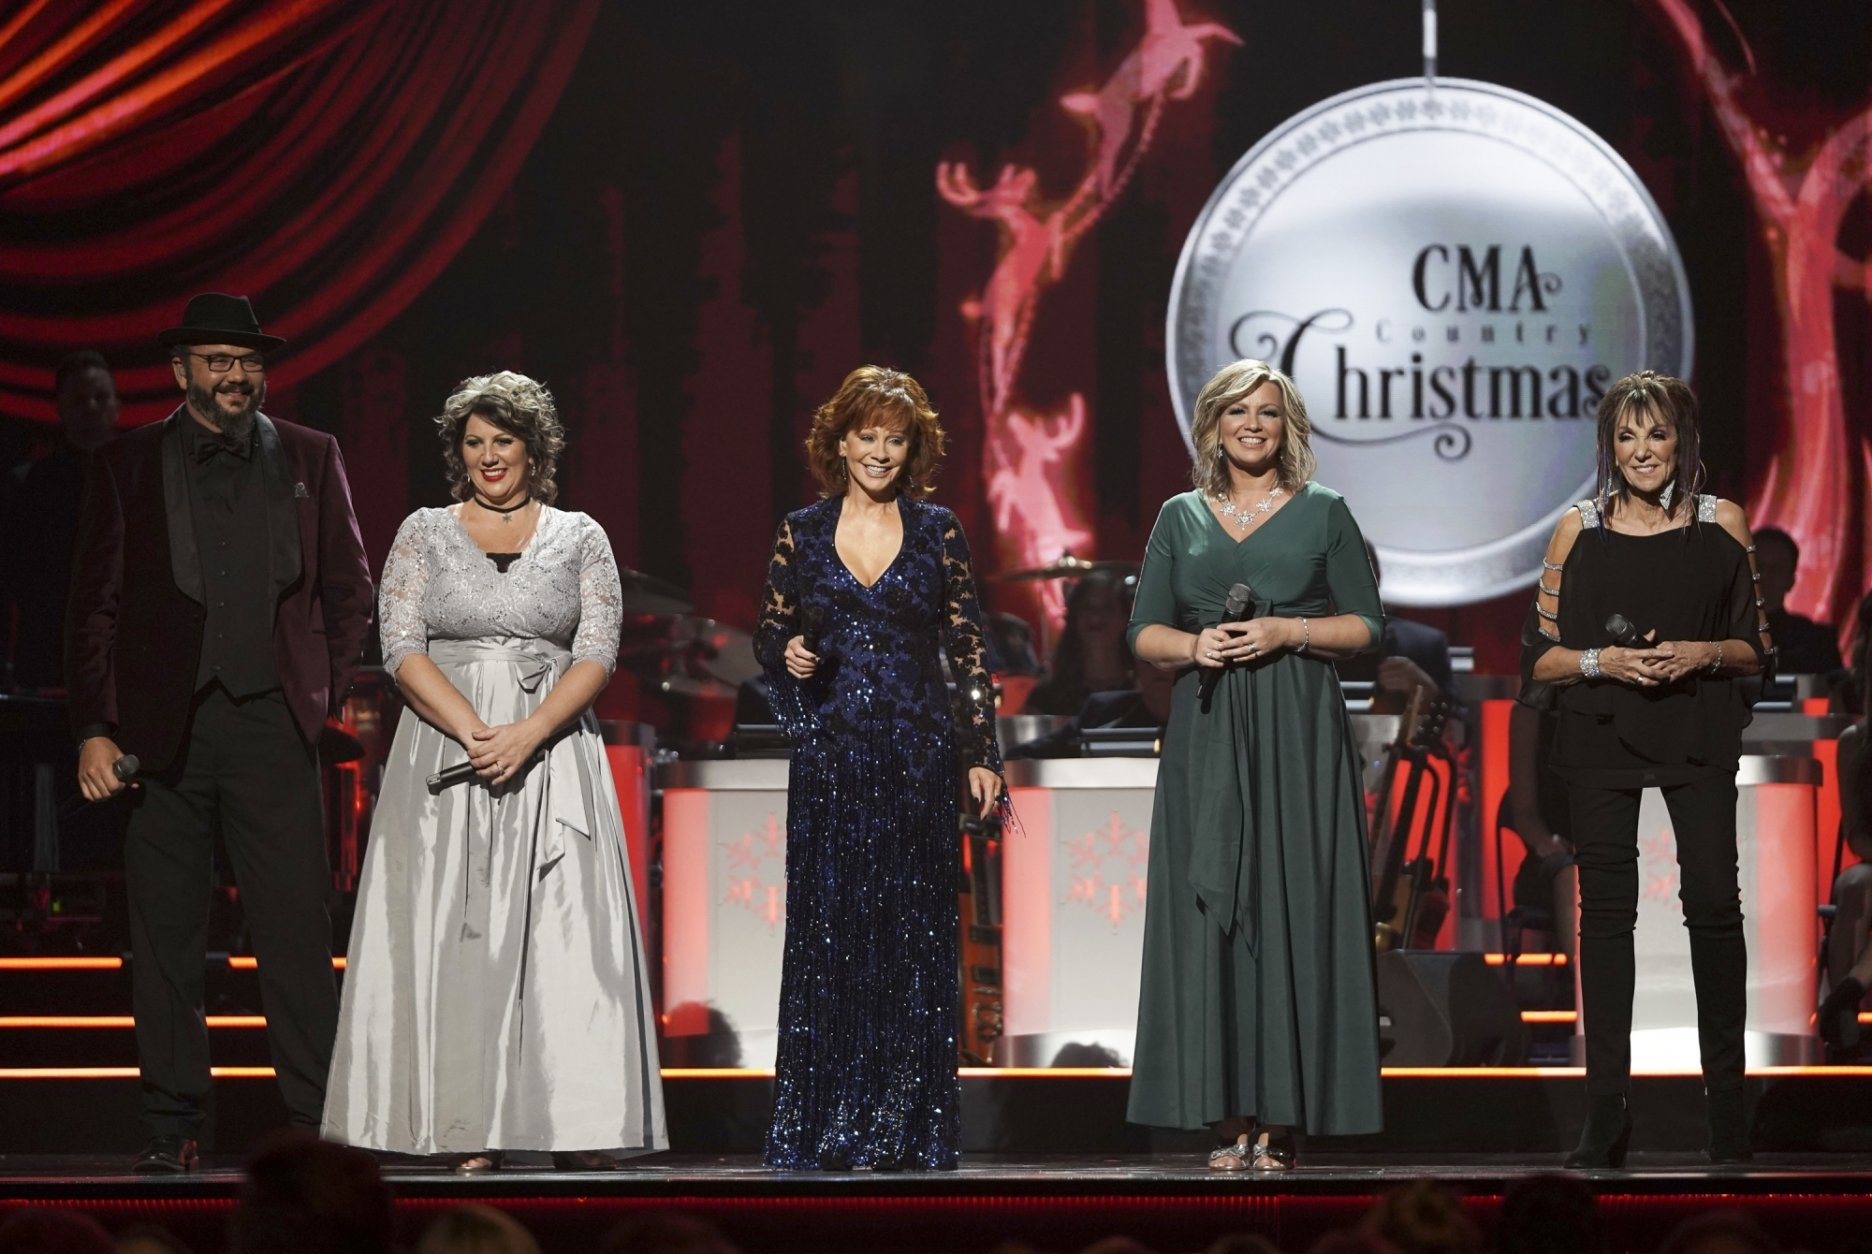 """This image released by ABC shows host Reba McEntire, center, with members of The Isaacs, from left, Ben Isaacs, Becky Isaacs Bowman, Sonya Isaacs Yeary and Lily Isaacs during the ninth annual """"CMA Country Christmas"""" airing Monday, Dec. 10,  at 8 p.m. EST on ABC. (Mark Levine/ABC via AP)"""